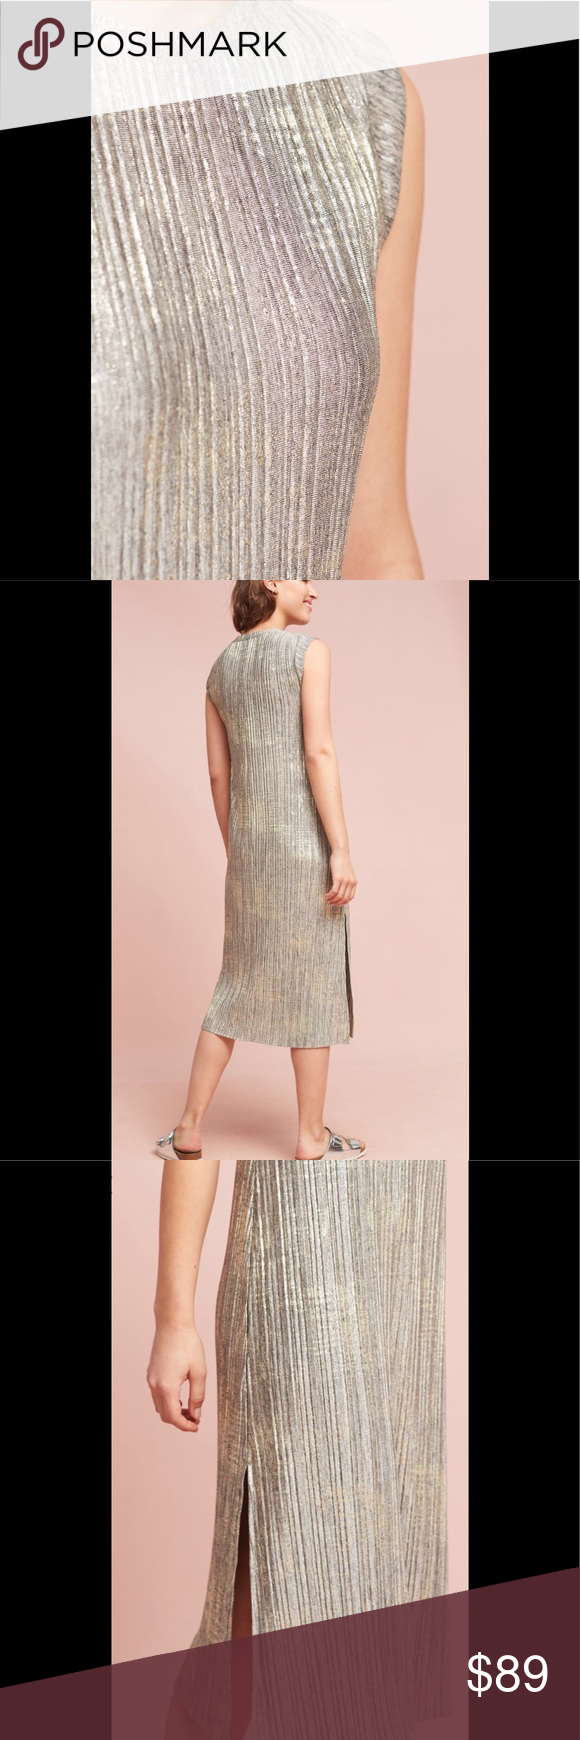 7503722a6985 Anthropology Corrina Metallic Dress Anthropology Corrina Metallic Stunning  Dress, size XL pullover styling, color gray. Anthropologie Dresses